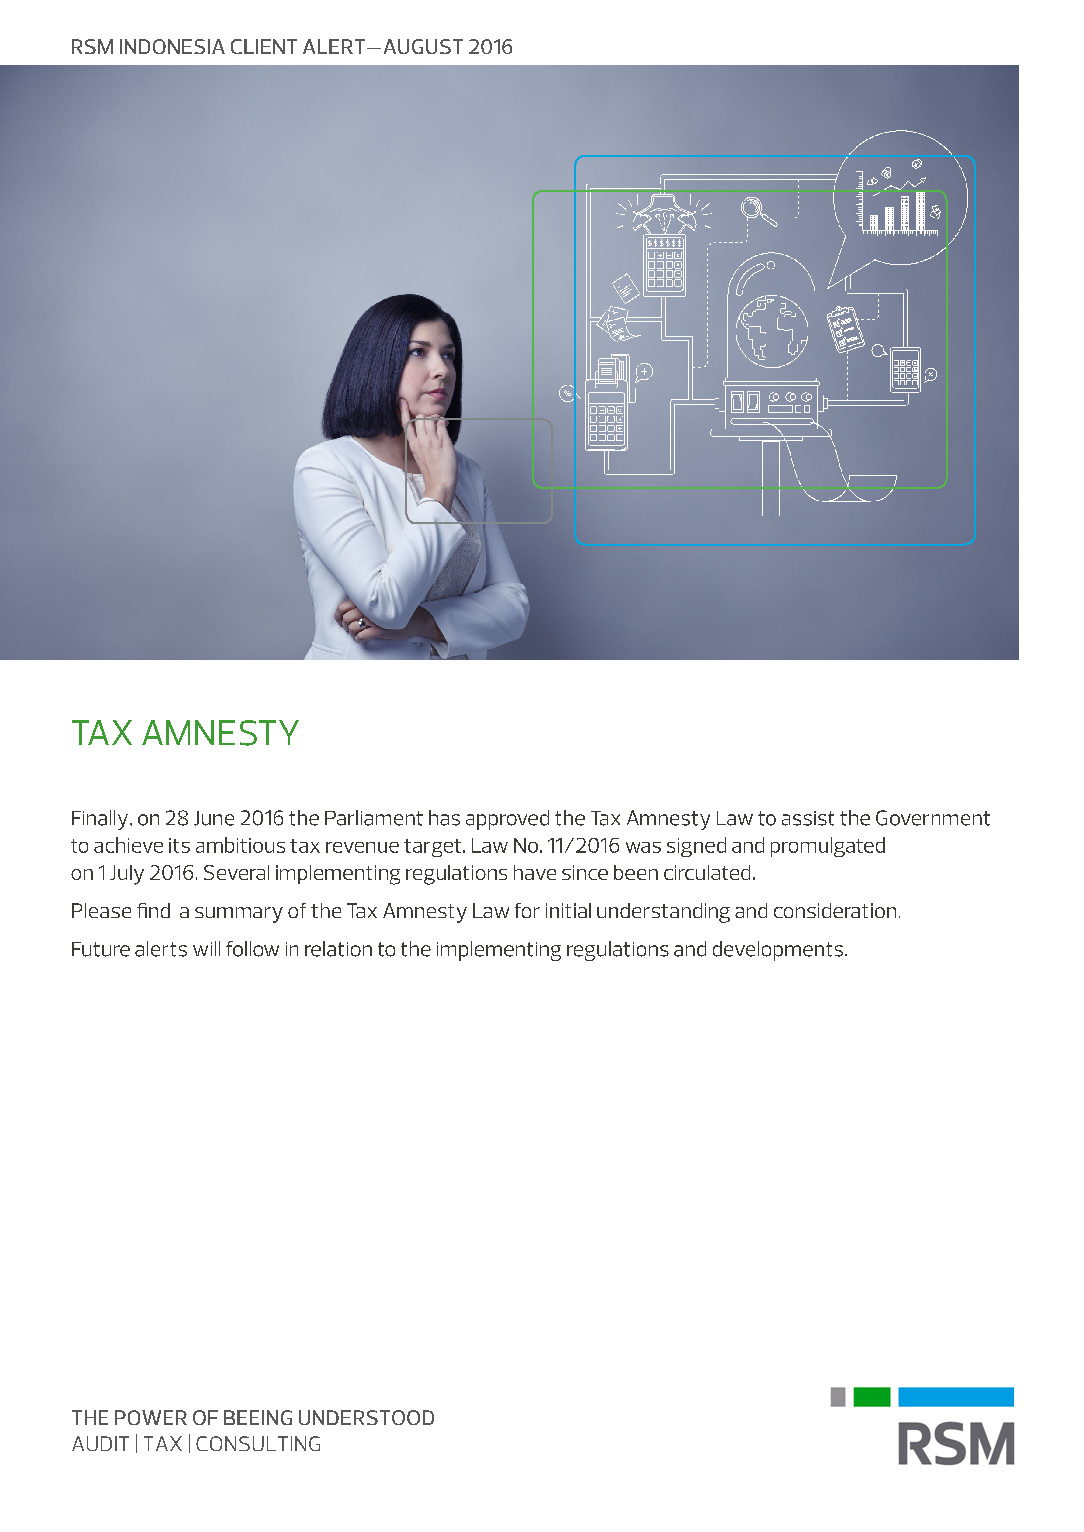 rsm_indonesia_client_alert_tax_amnesty_page_1.jpg